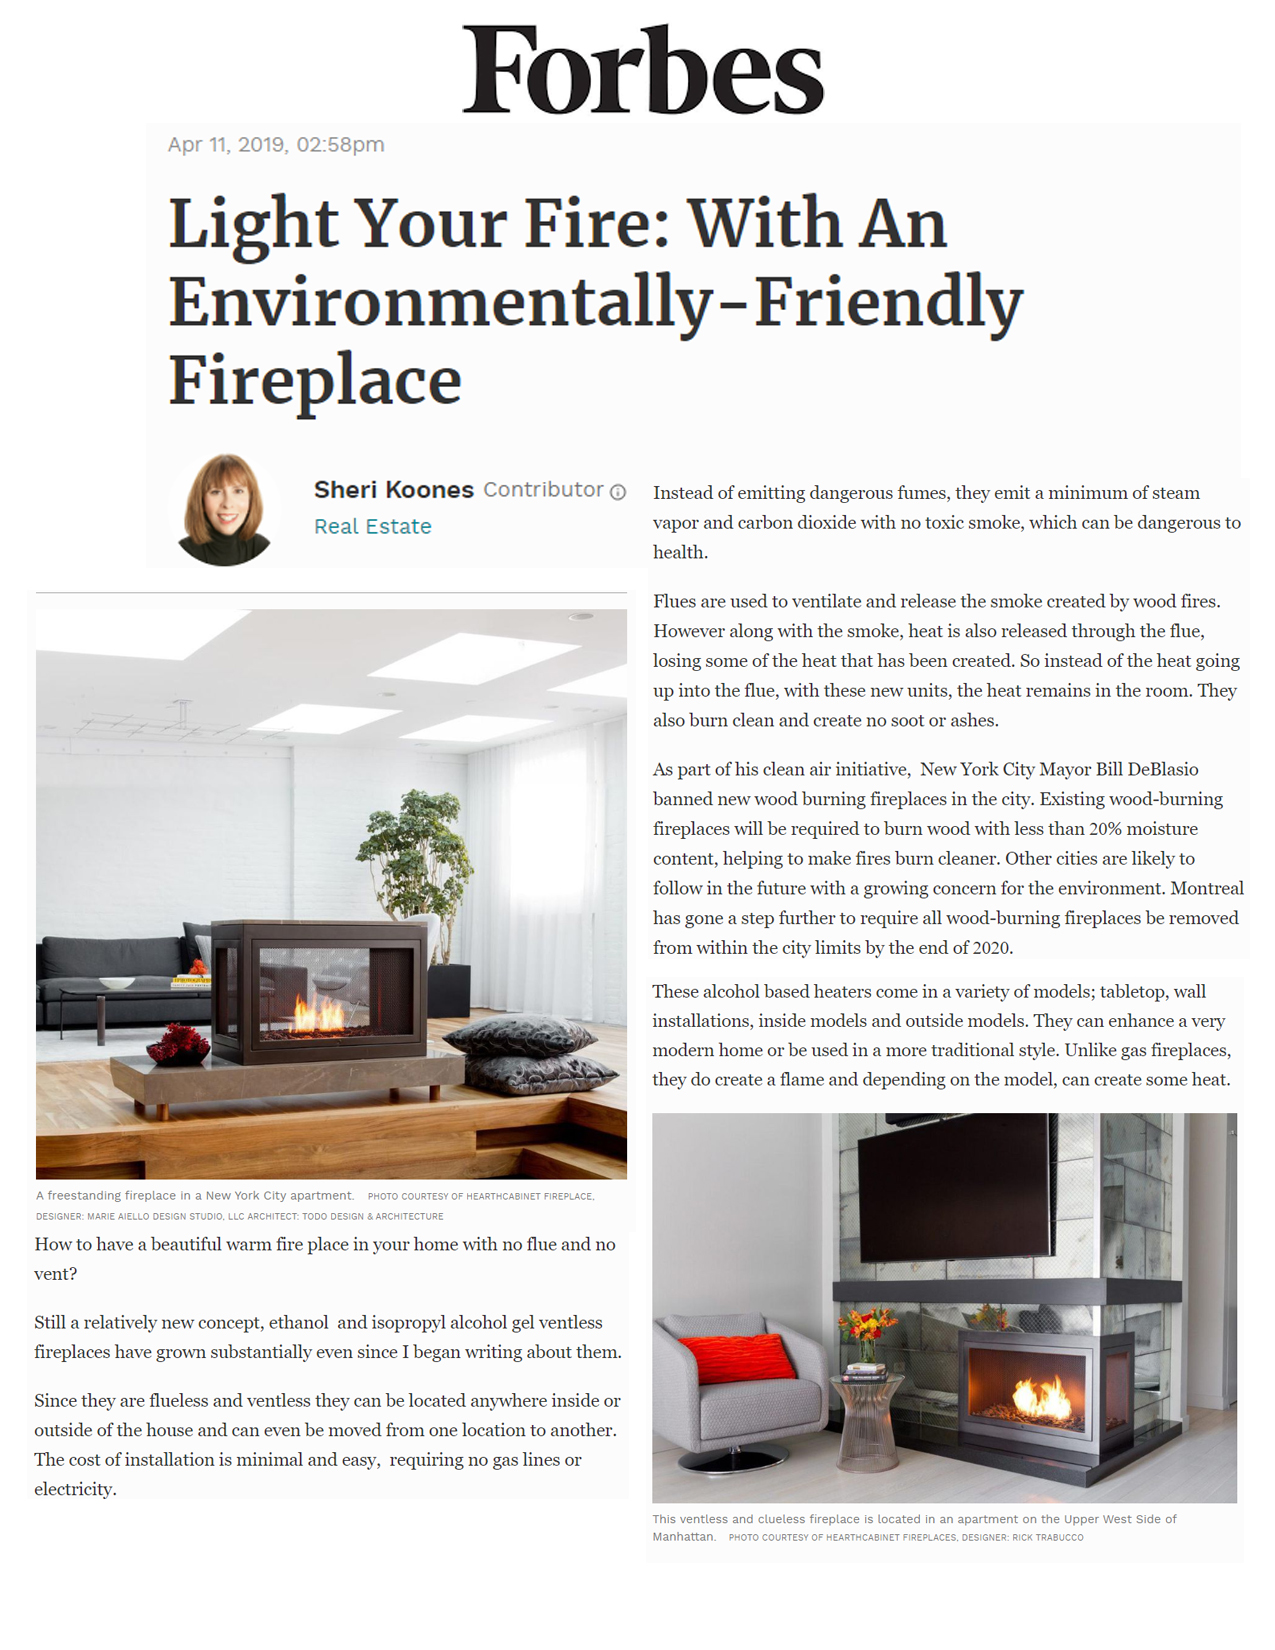 HearthCabinet Press & Media Stories About Ventless Fireplaces